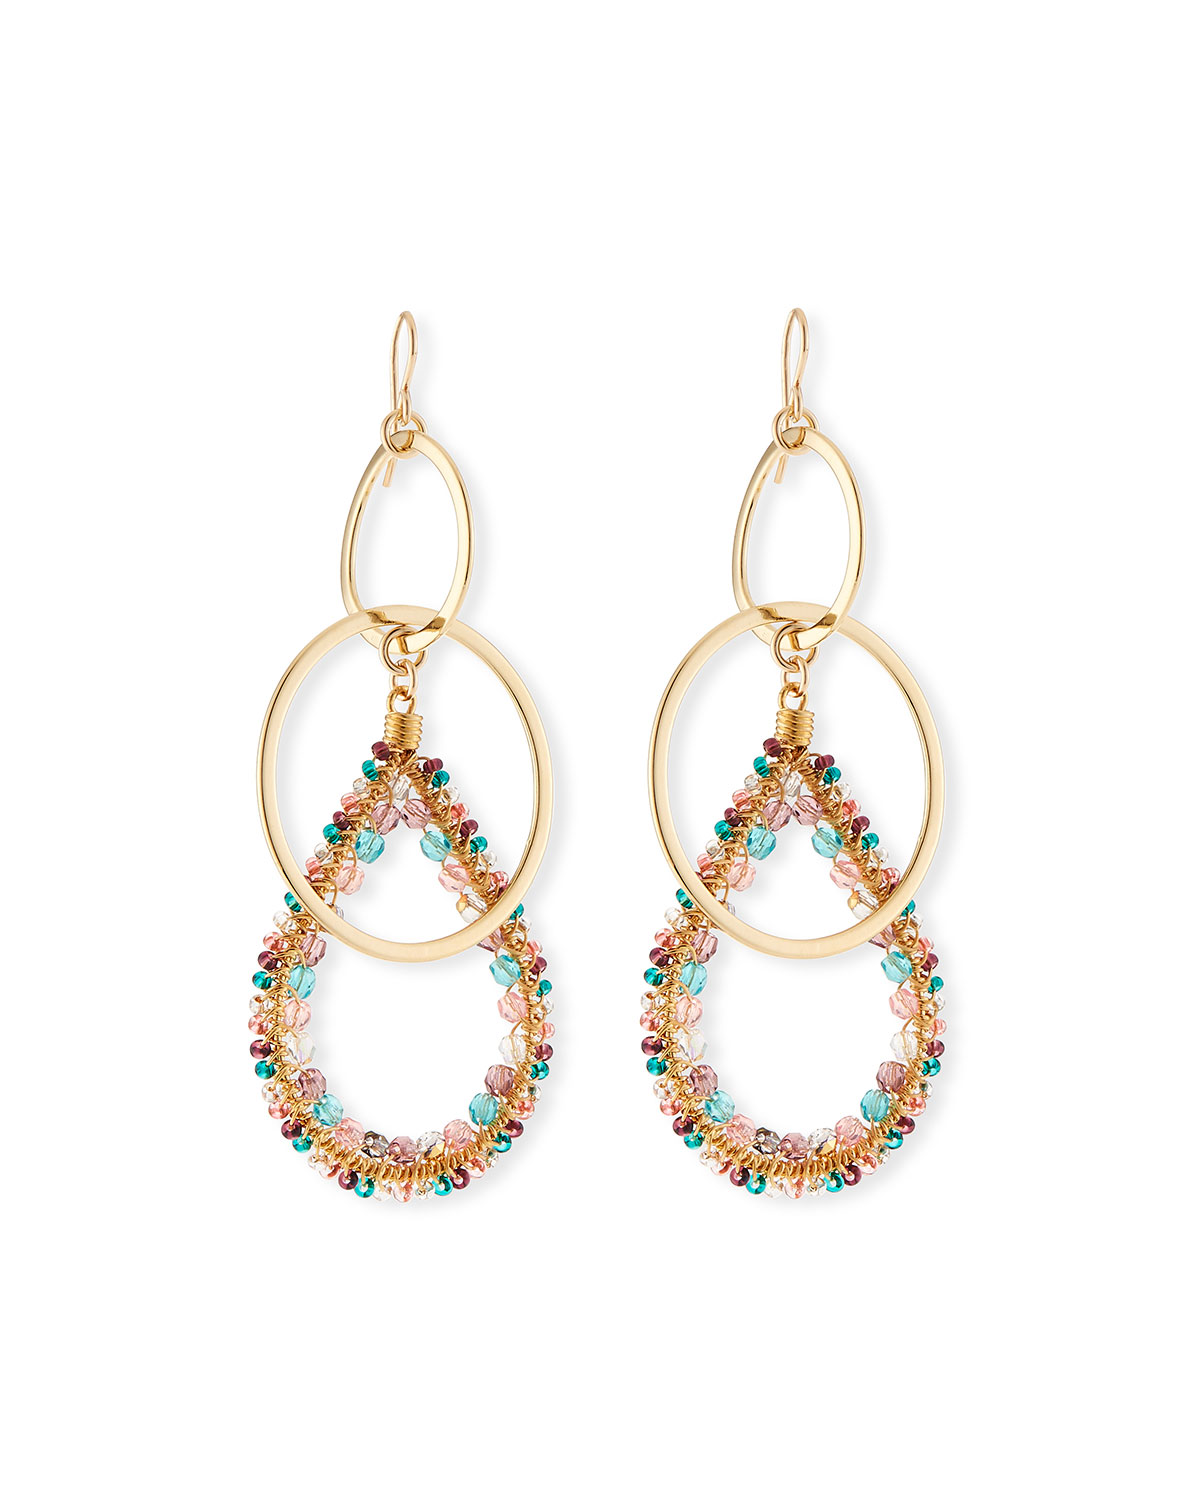 Devon Leigh Teardrop Double-Link Earrings nwpE52zU1